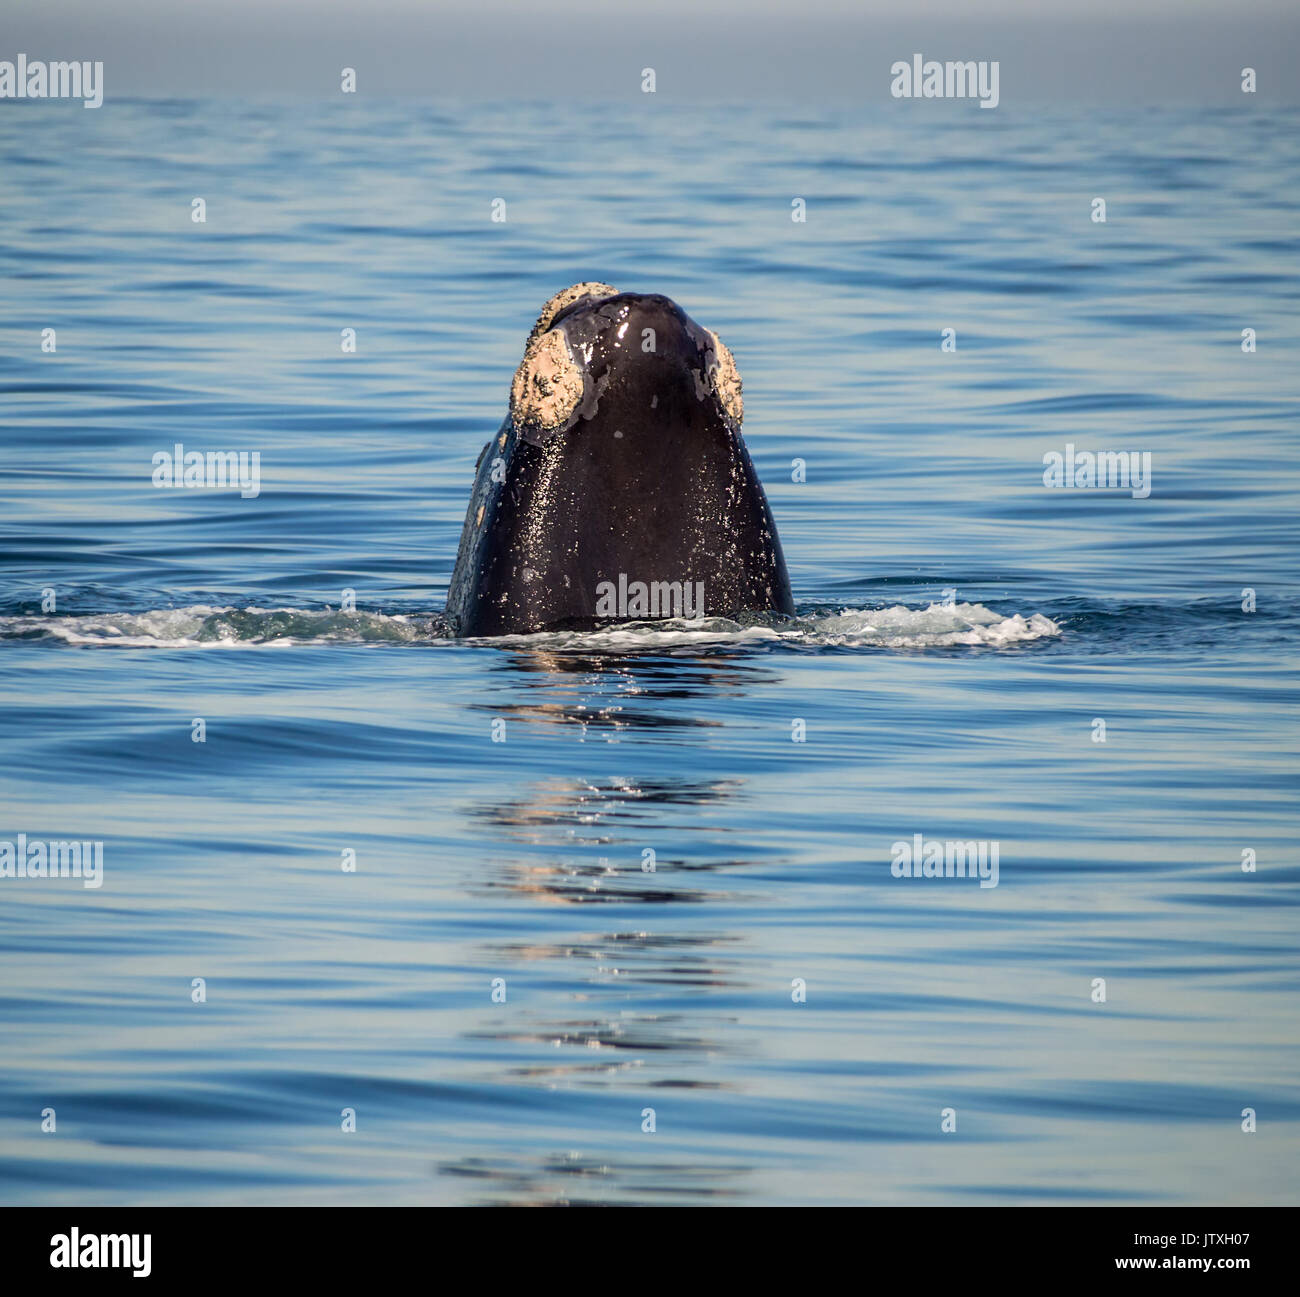 A Southern Right Whale spyhopping in False Bay, South Africa - Stock Image